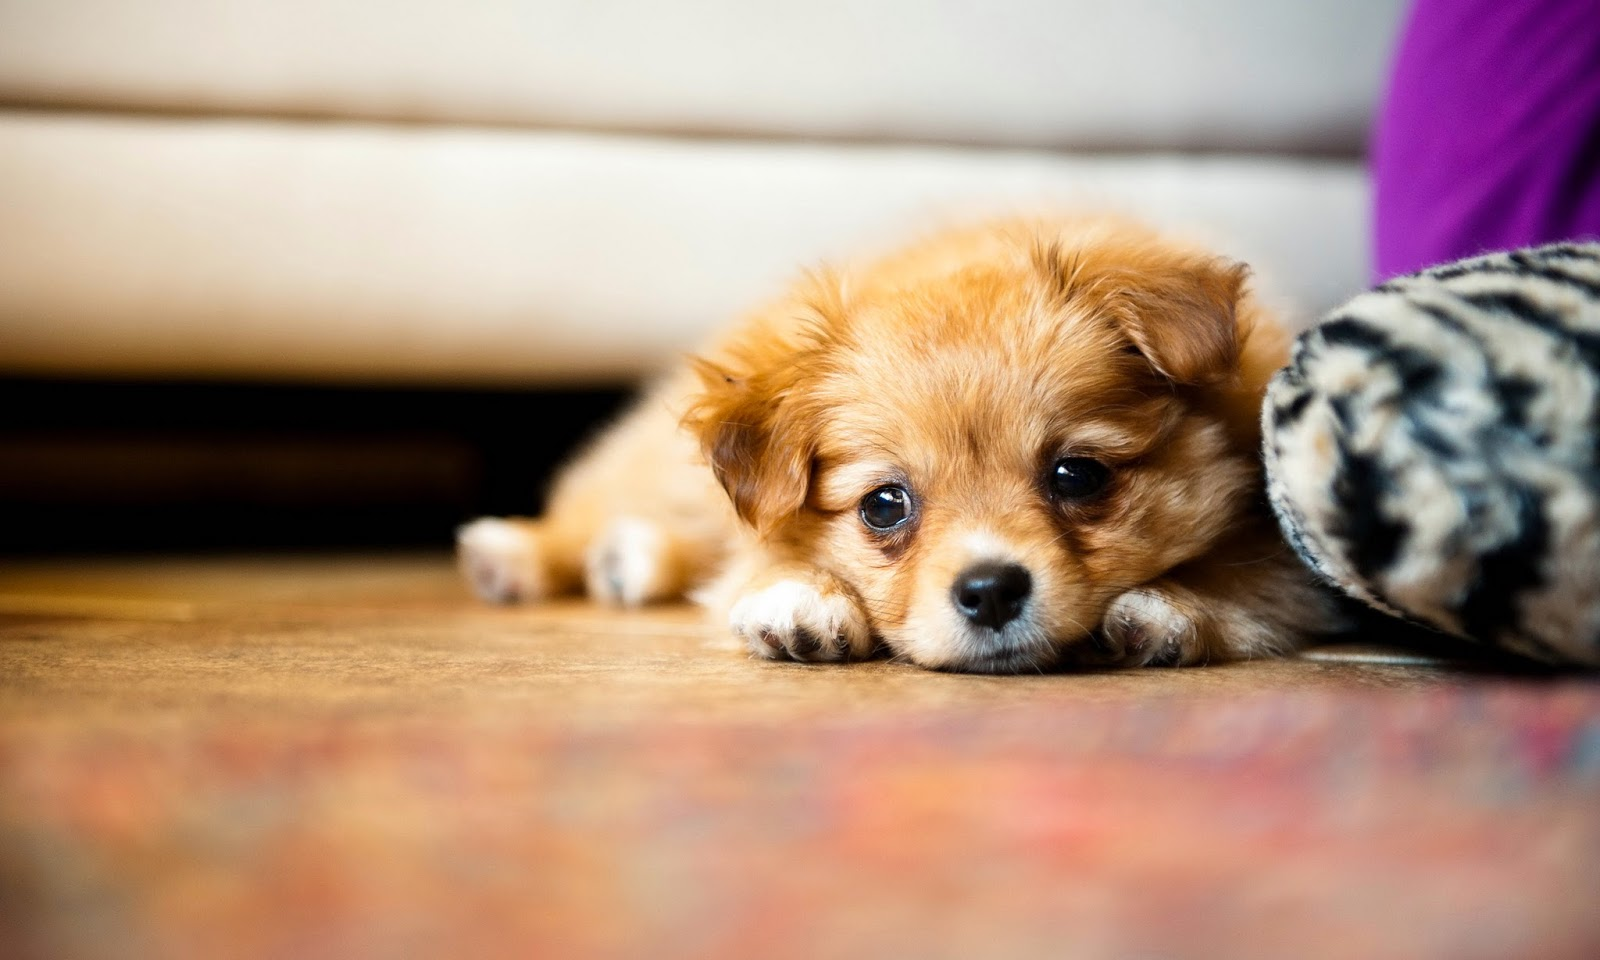 Puppy Photography 1080p Wallpapers Hd Wallpapers High